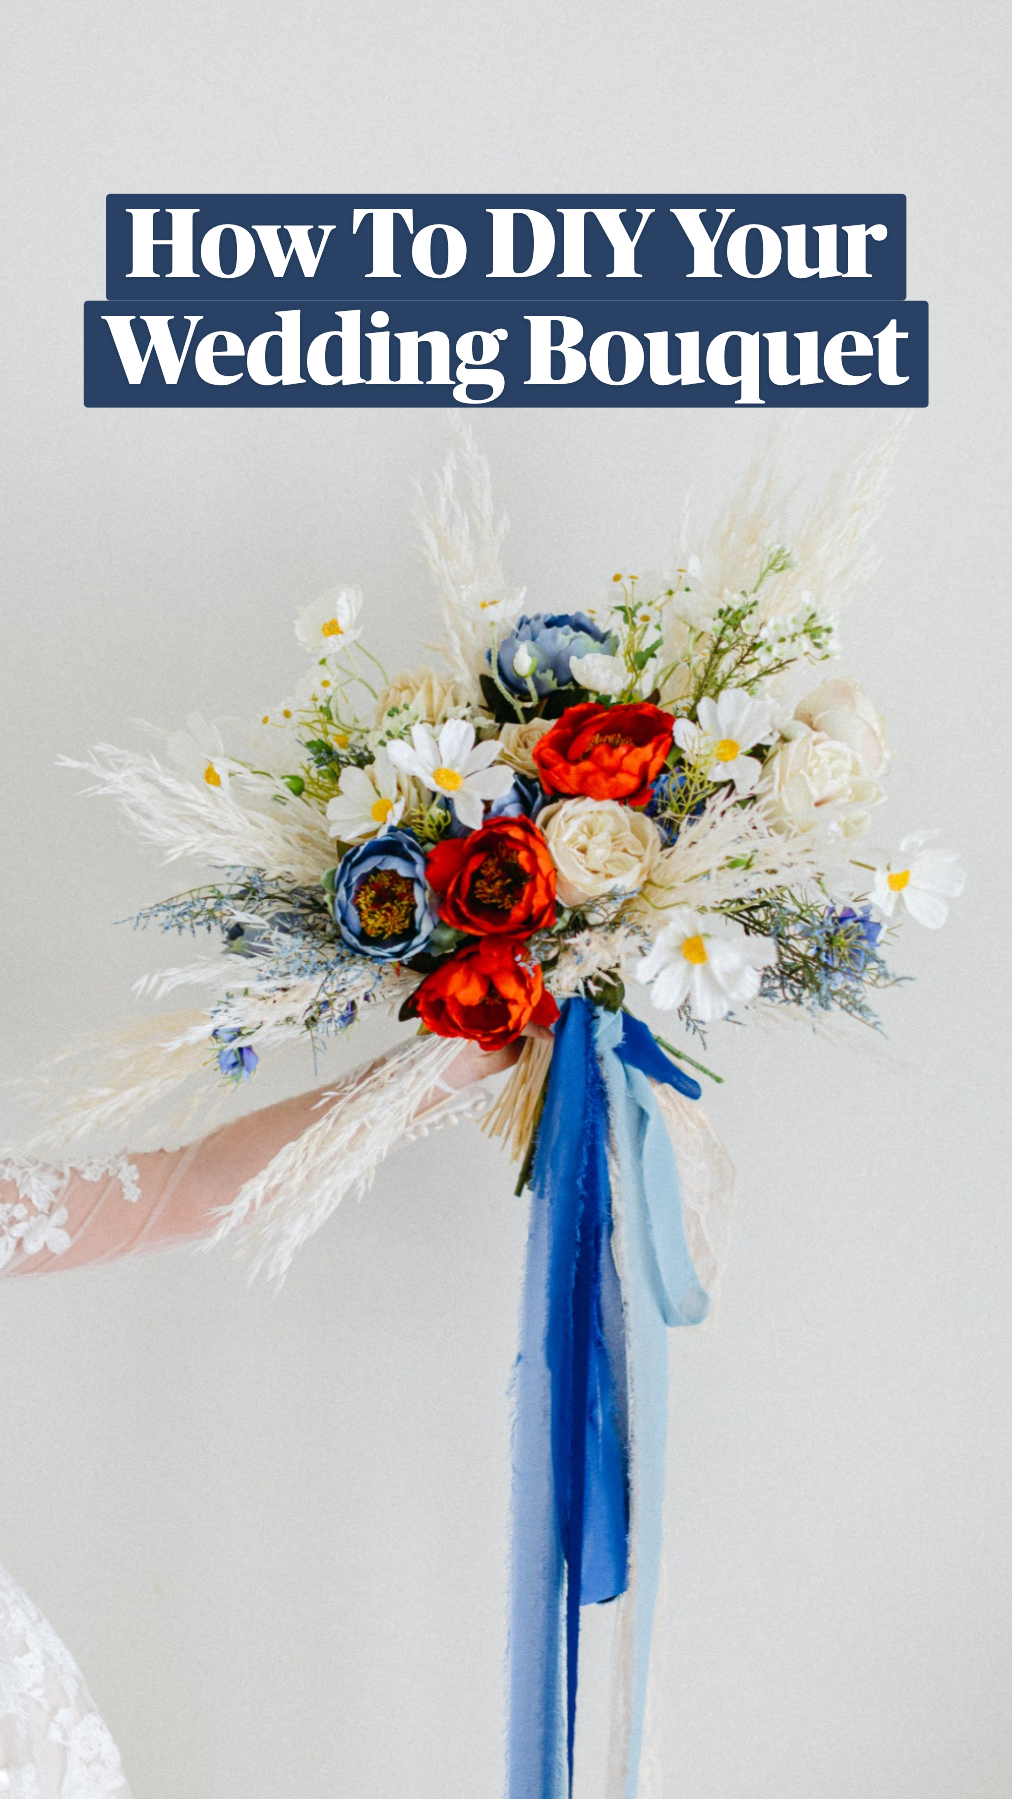 How To DIY Your Wedding Bouquet